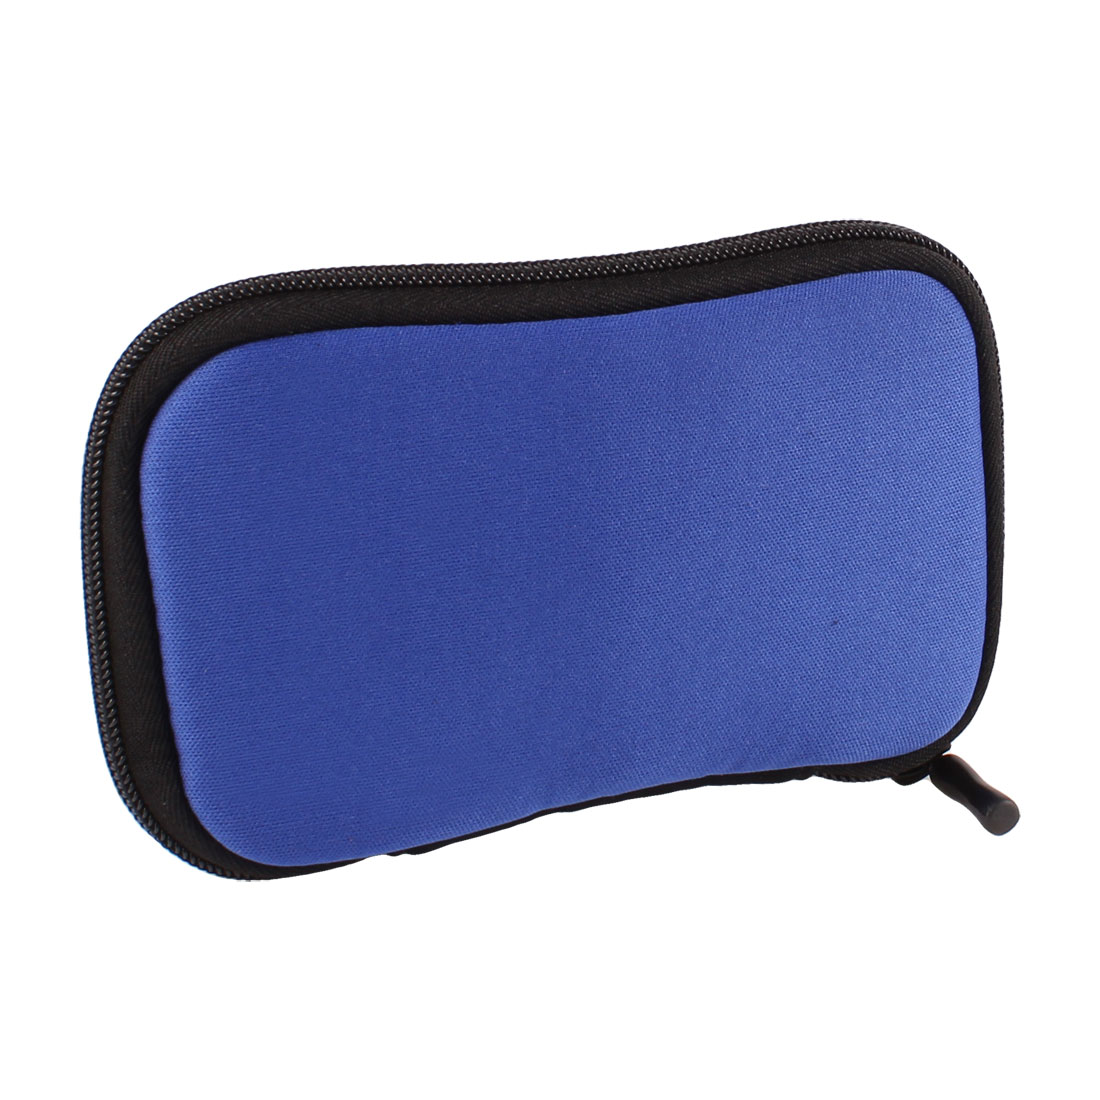 "2.5"" HDD Hard Drive Disk Zip-up Neoprene Sleeve Bag Pouch Carry Case Royal Blue"